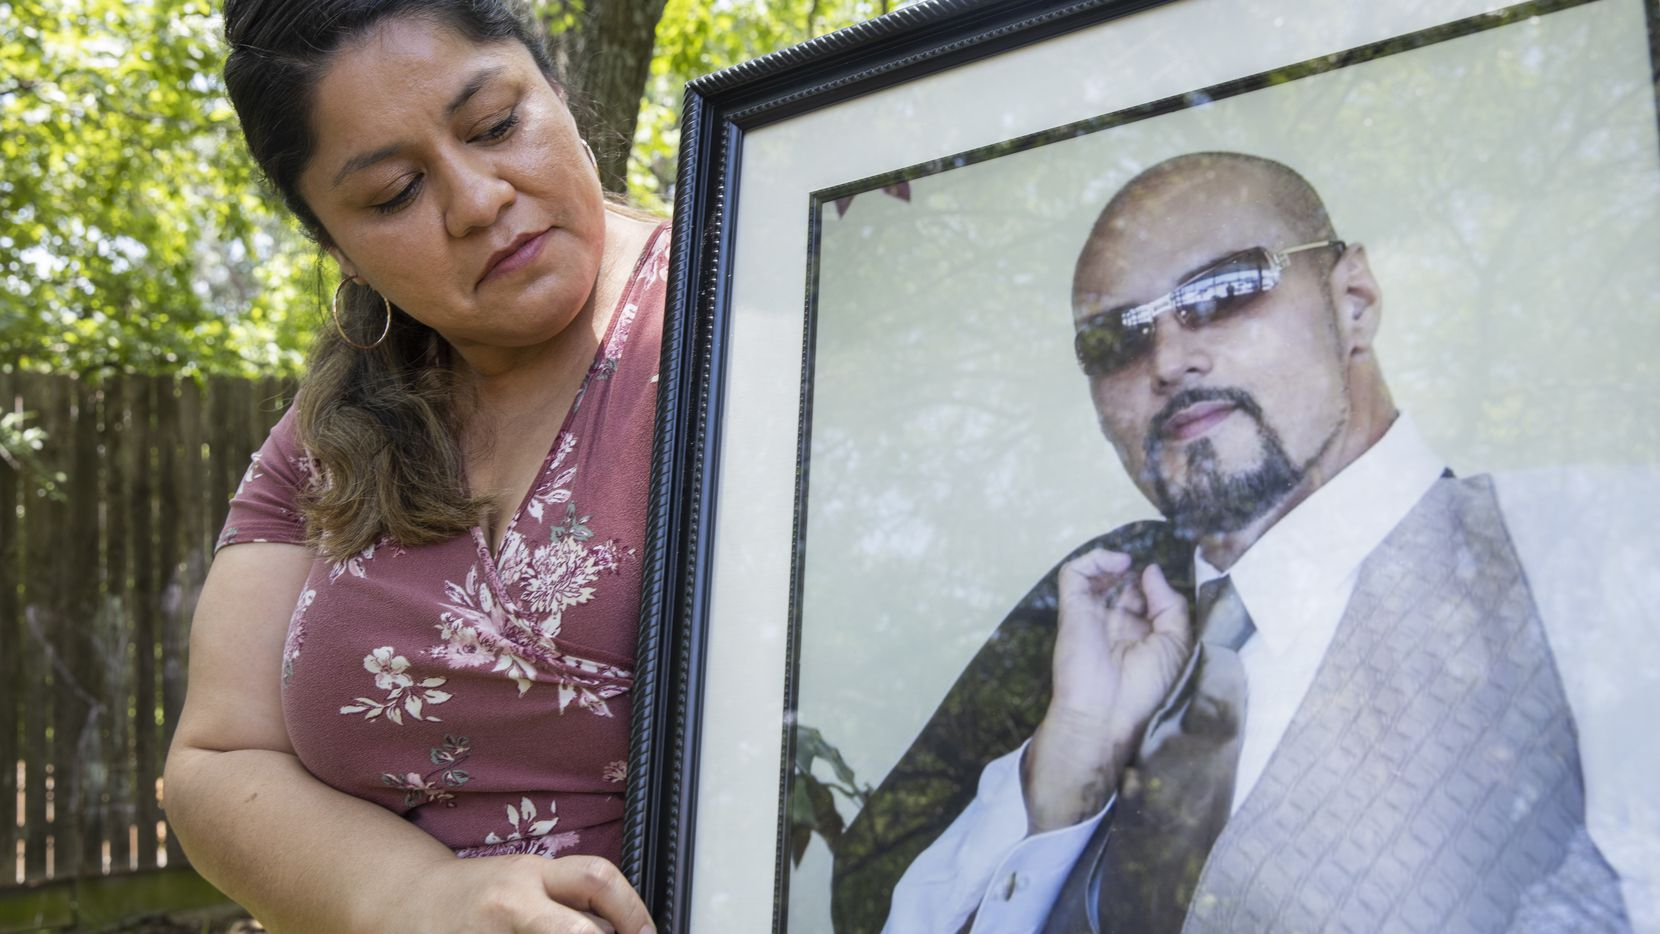 Parkland Health & Hospital System nurse Dolores Diaz poses for a photo with a photo of her late husband on July 9, 2020 at their home in Grand Prairie. Dolores' husband Juan died unexpectedly in late June.(Juan Figueroa/ The Dallas Morning News)